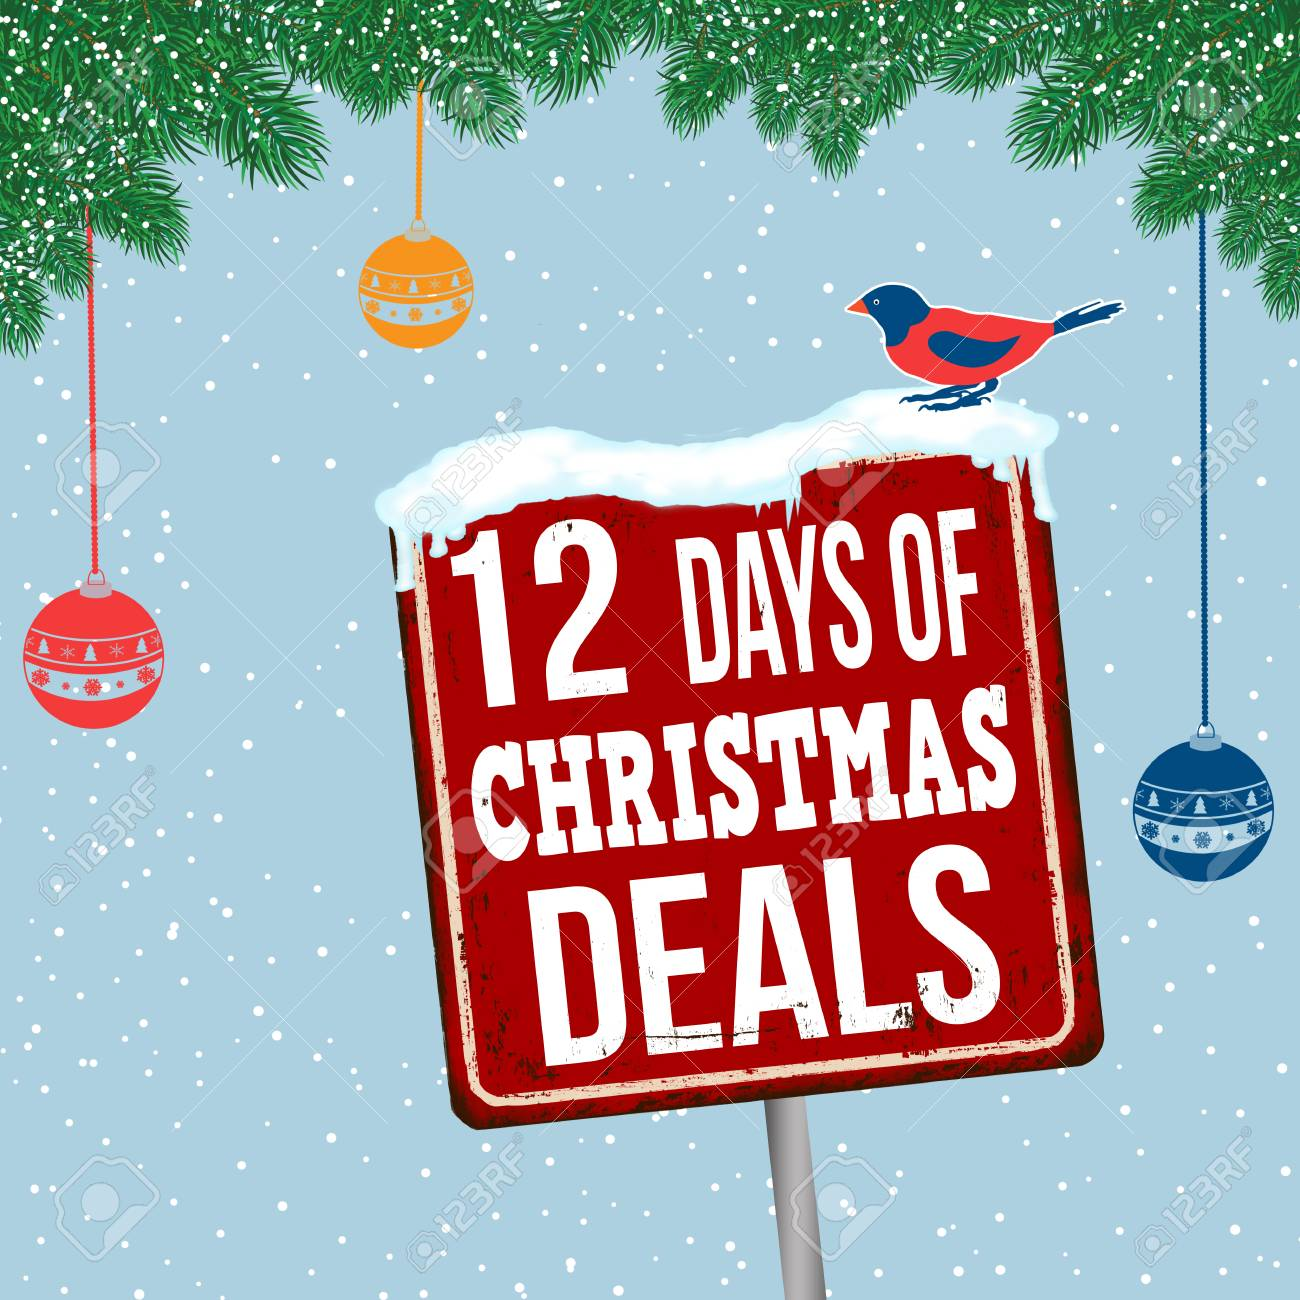 12 Days Of Christmas Deals Vintage Rusty Metal Sign On Christmas ...